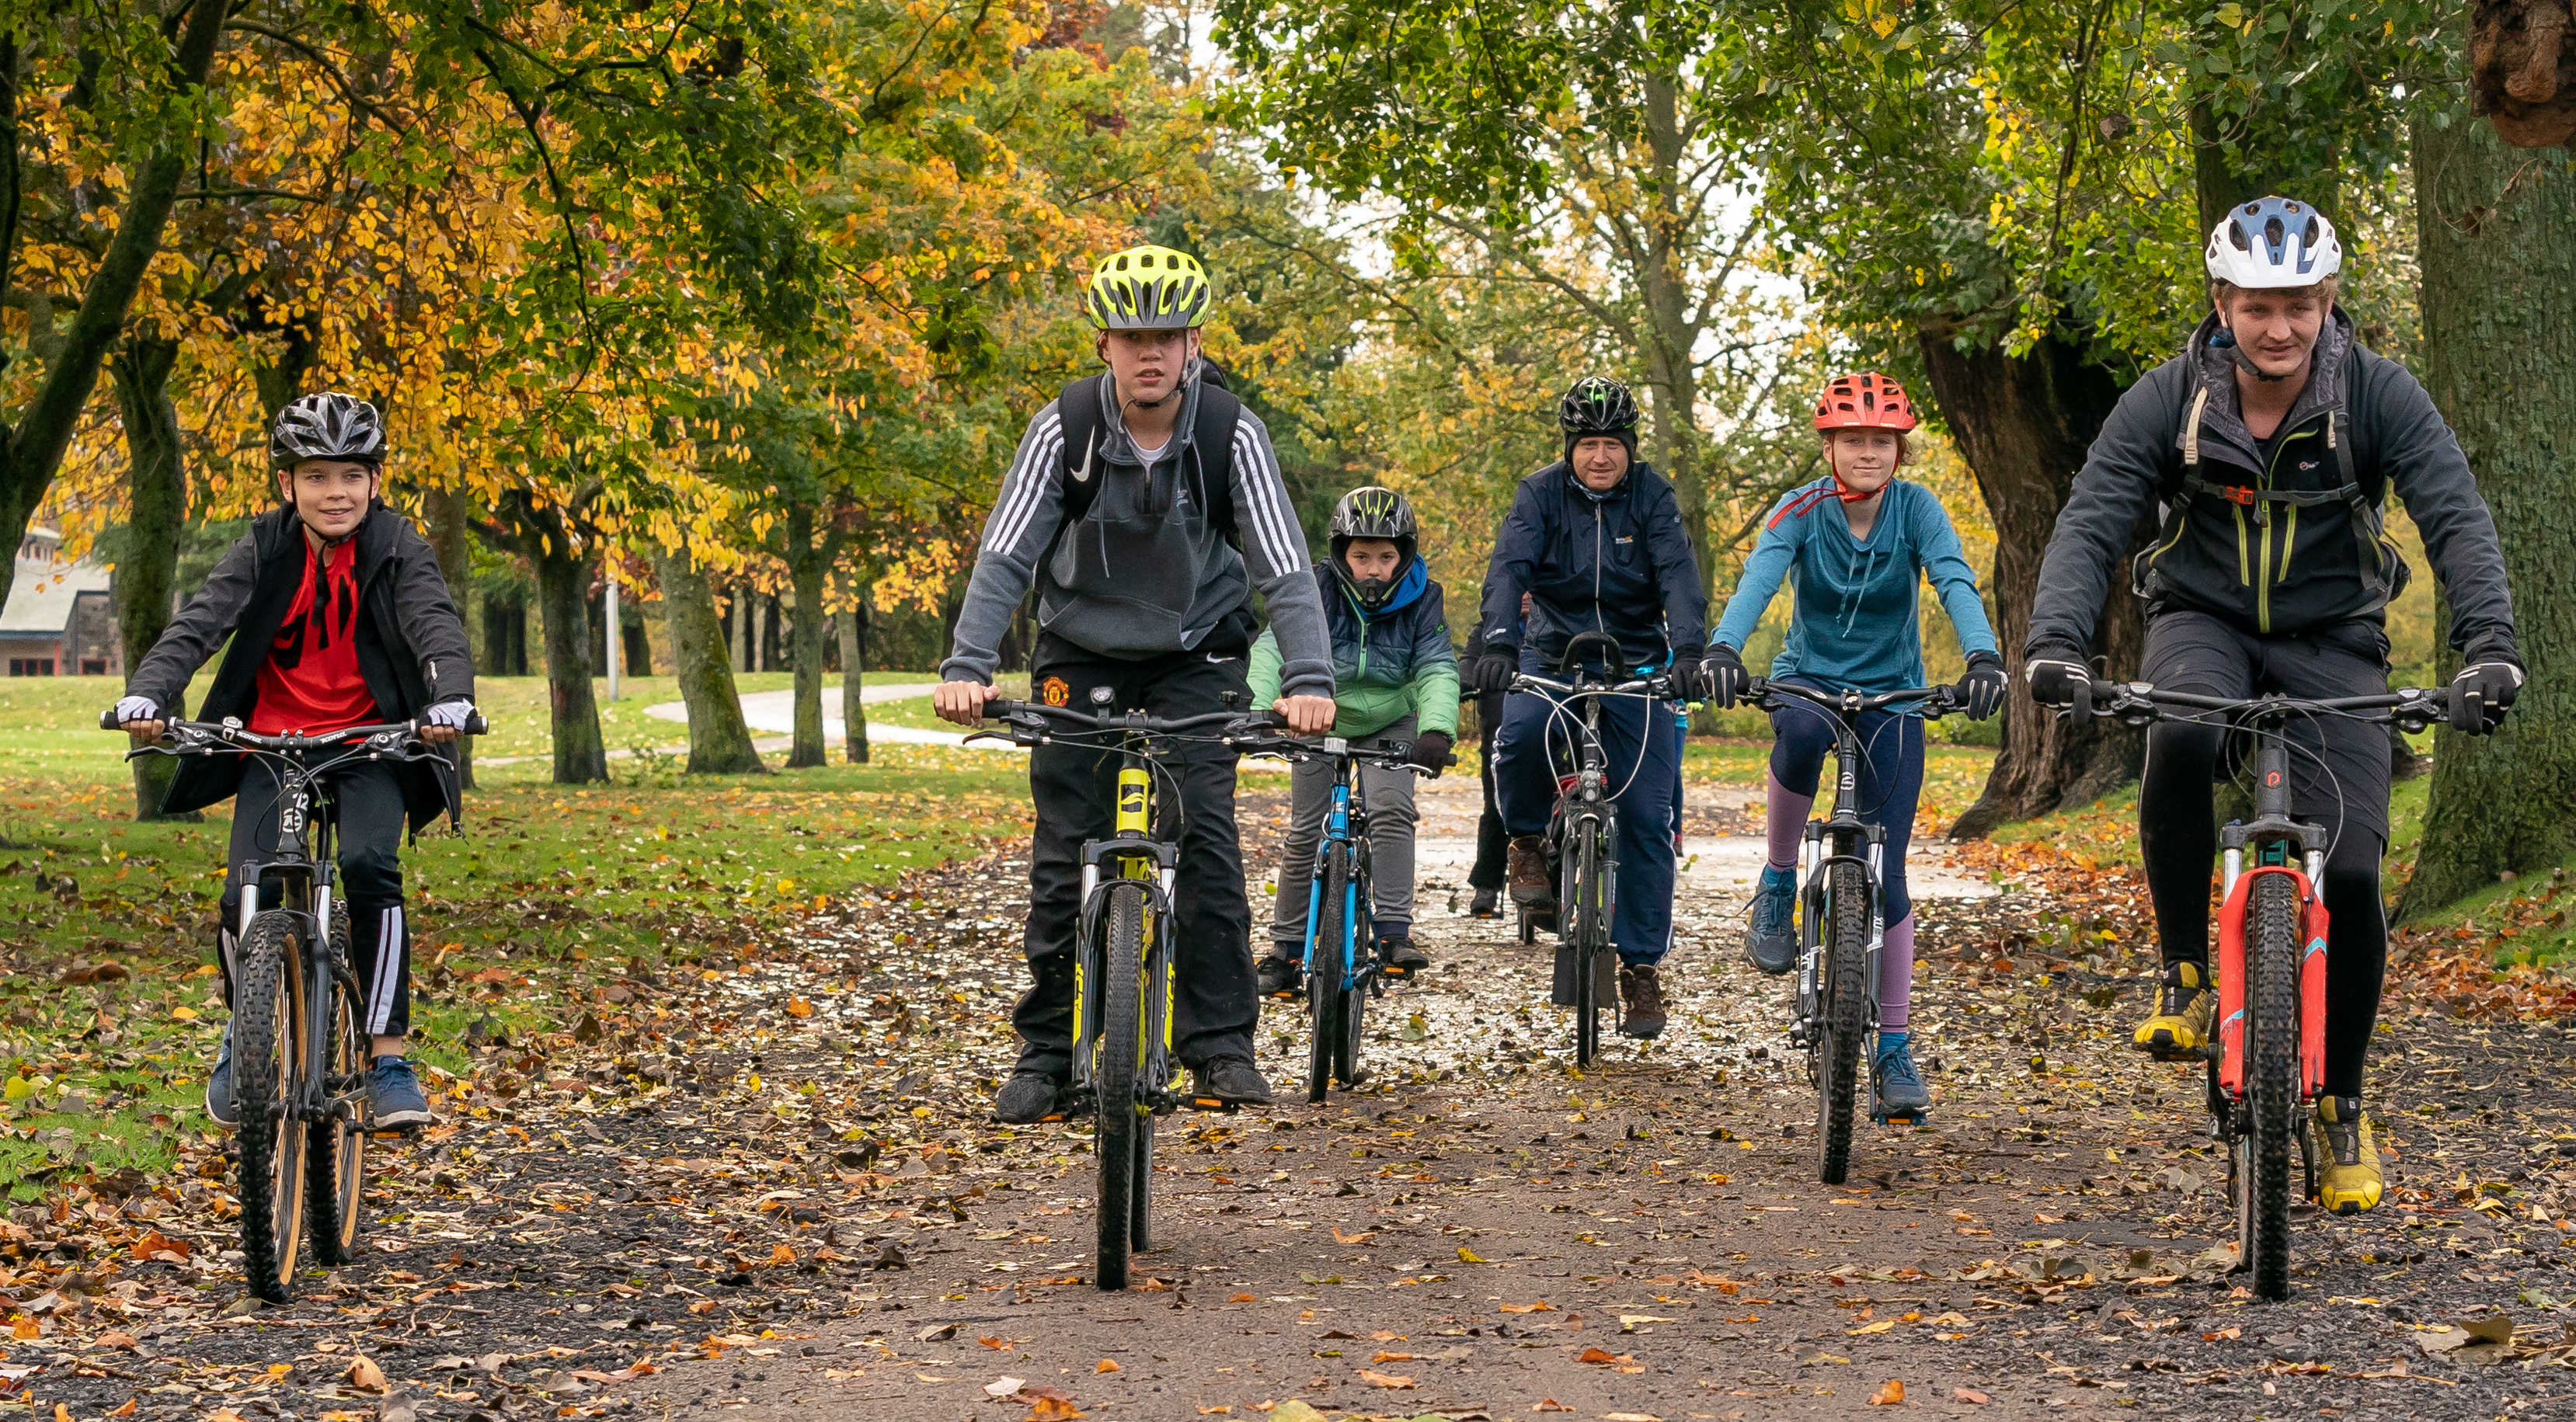 This is a scene from Bikefest as part of Elgin Youth Café's Inspiration Week at Coper park, Elgin, Moray on Sunday 14 October 2018. Photographed by JASPERIMAGE ©. PICTURE CONTENT:- Right, David Brackpool of Outfir Moray, leads the Cyclist away from Cooper park to Lossiemouth.